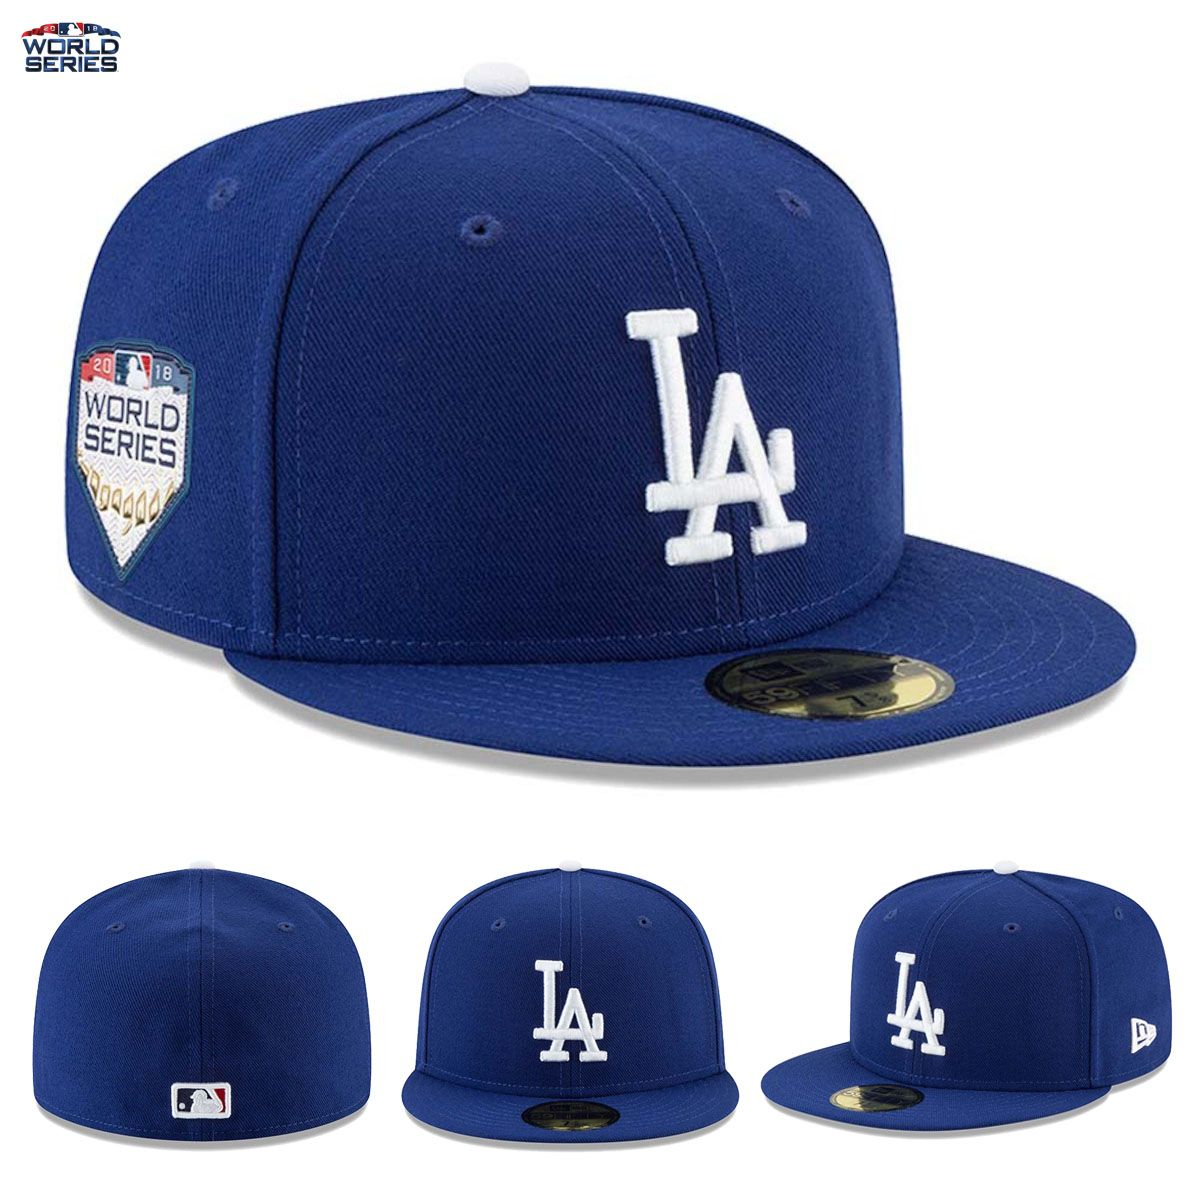 NEW Los Angeles Dodgers New Era 59FIFTY Fitted Hat Cap 2018 World ... e7aac7242e02